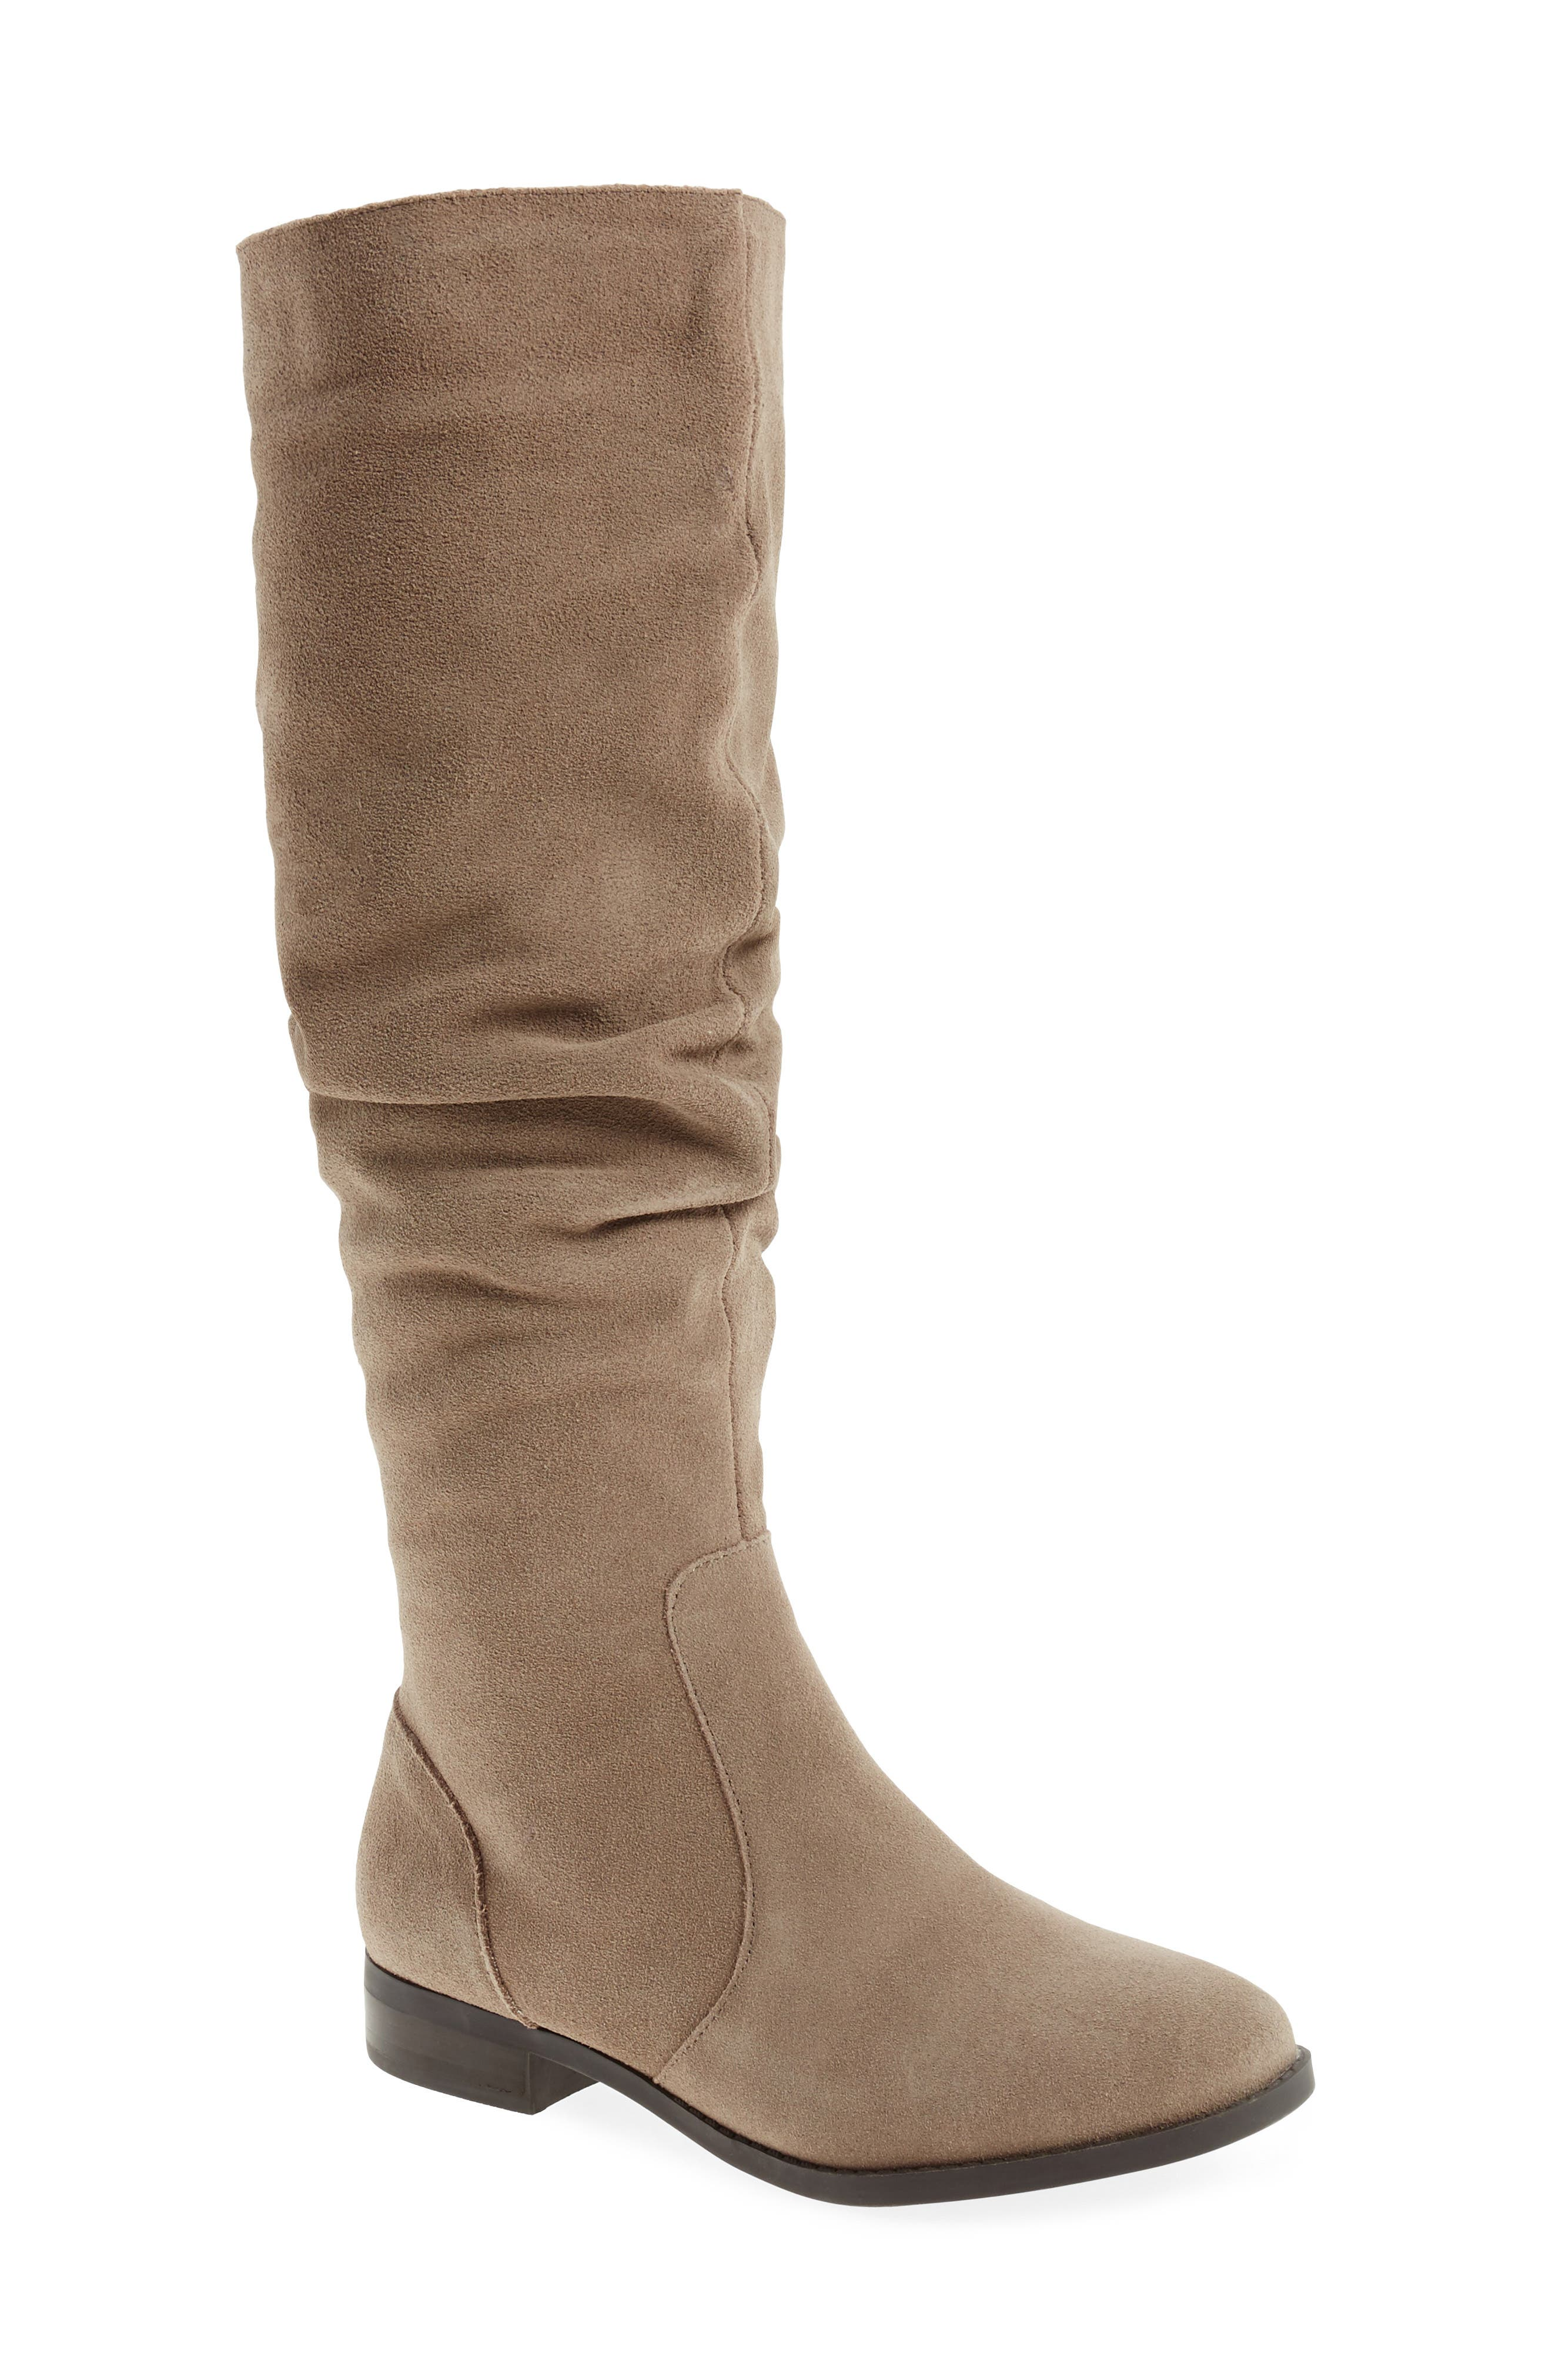 Taupe suede 'Beacon' knee high boots low cost online 14RbMPJKK